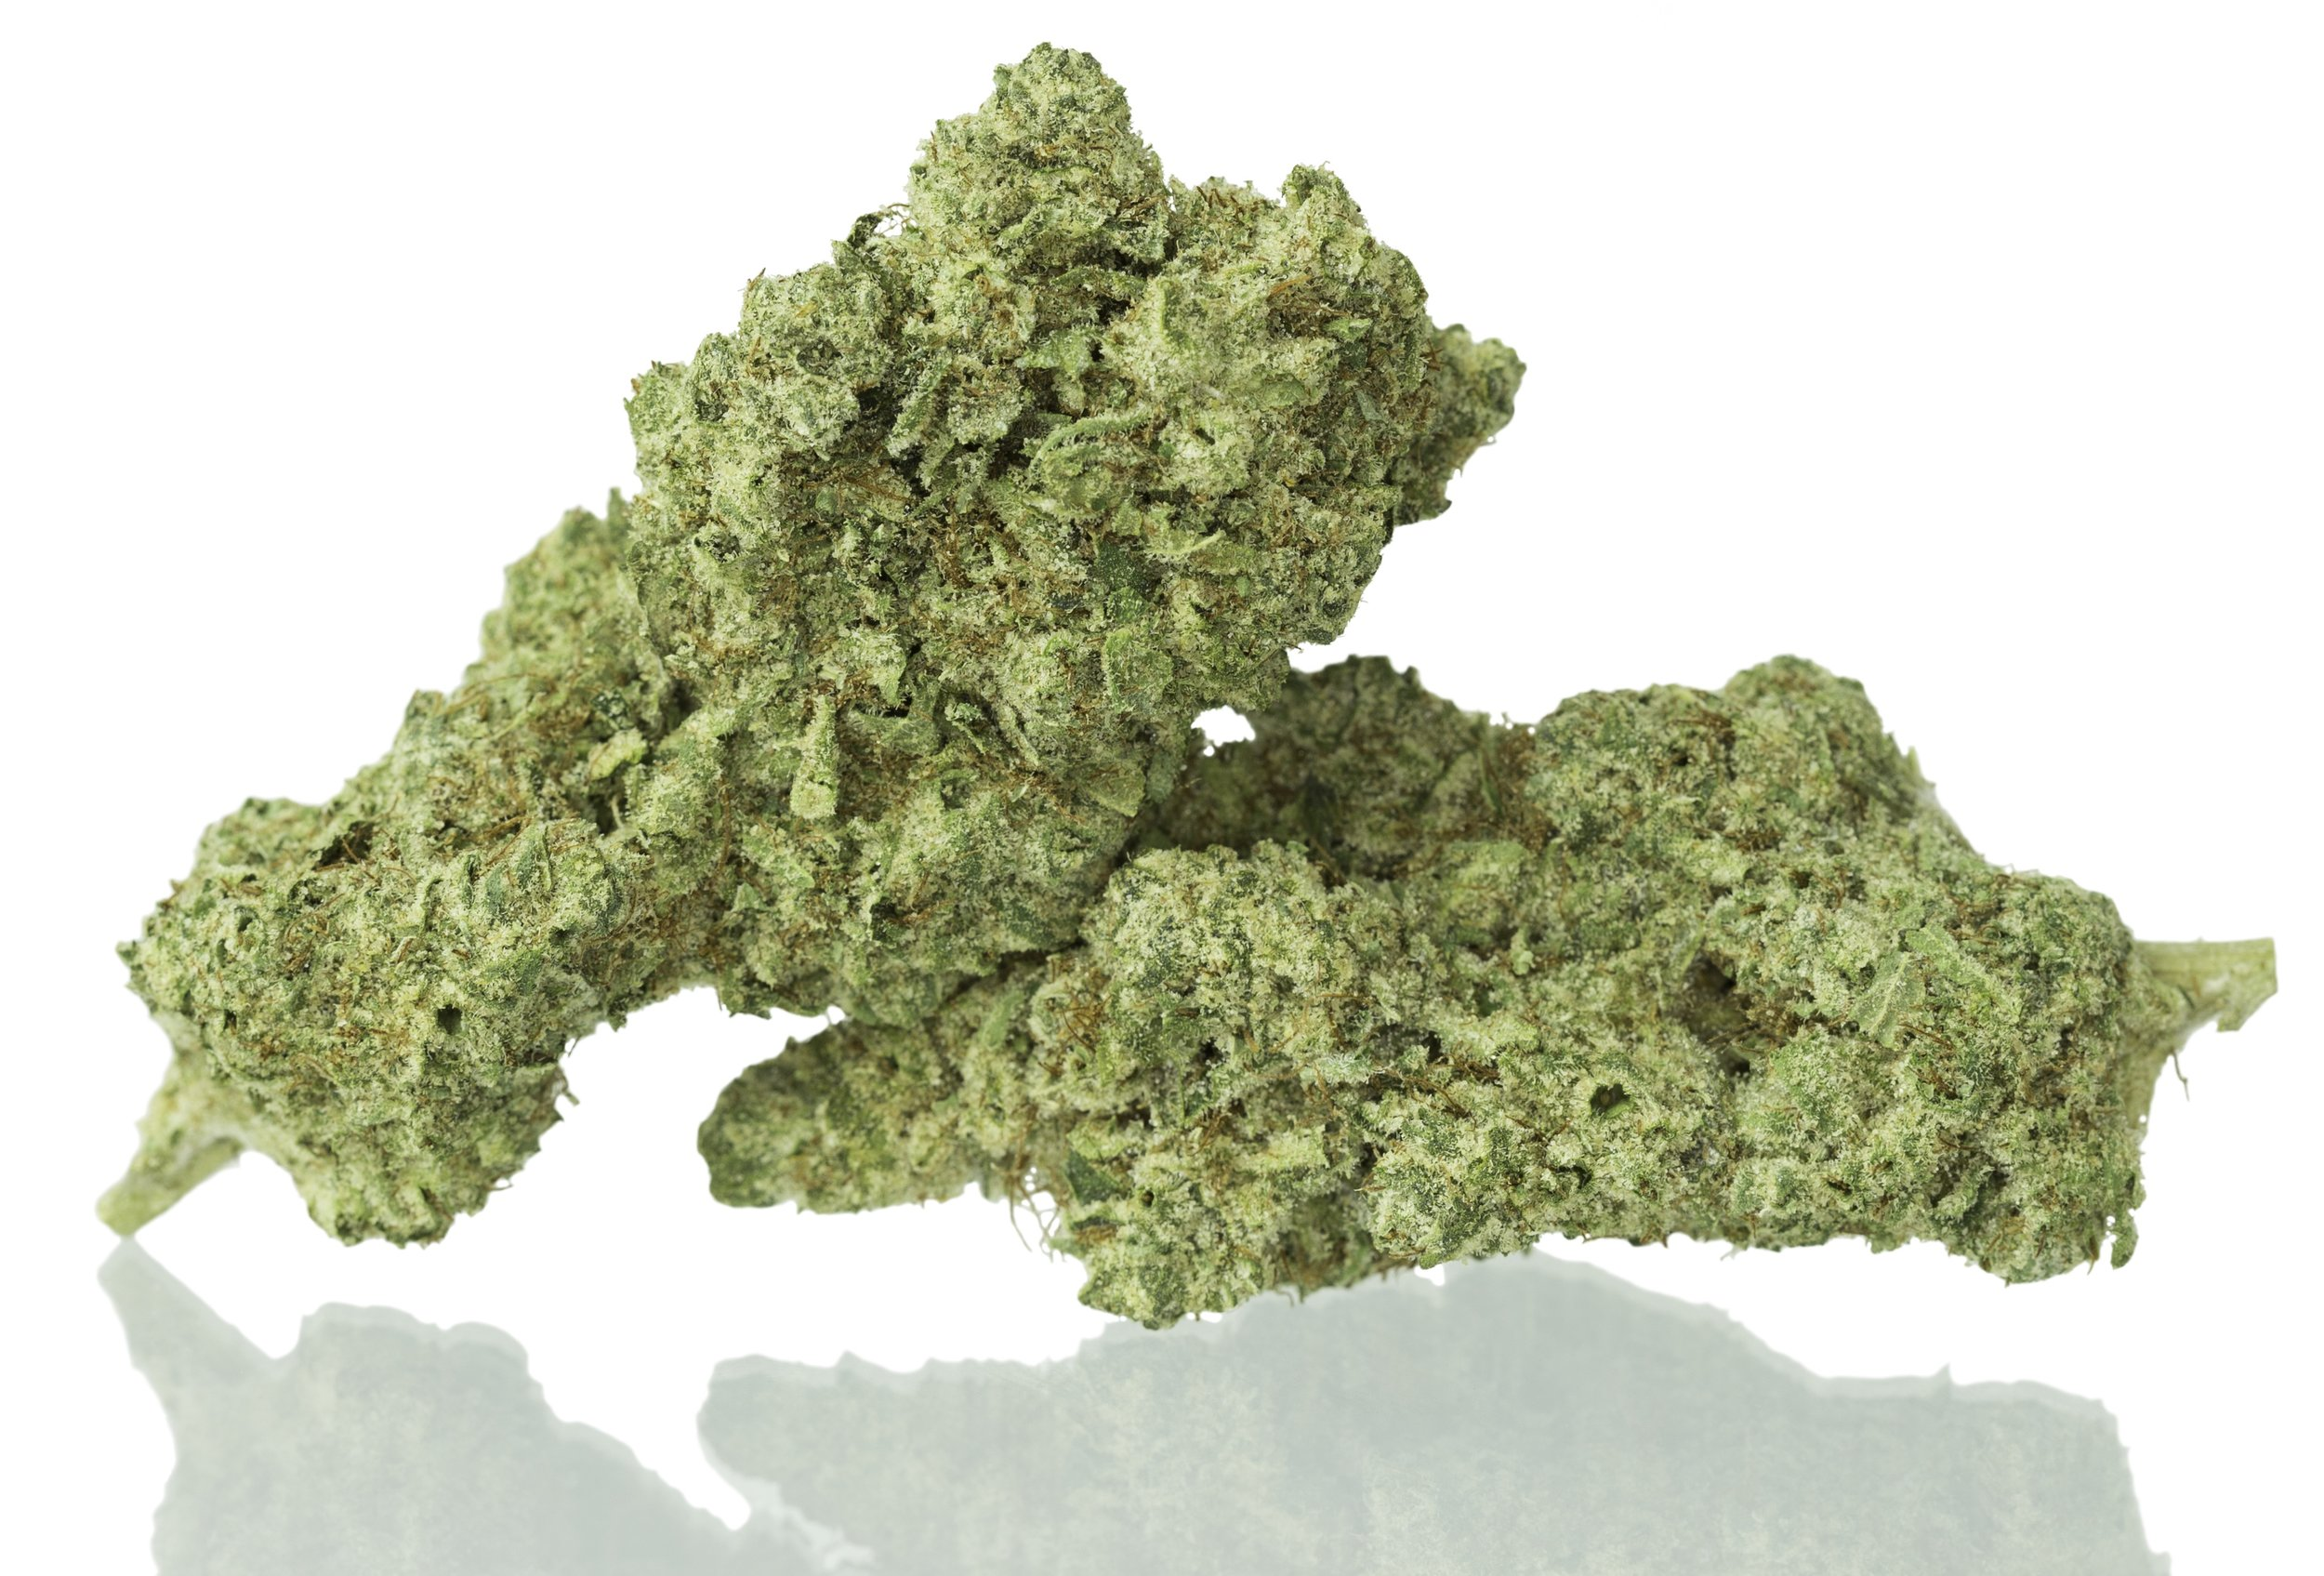 Ogre OG is incredibly pungent strain with gassy, earthy flavors.